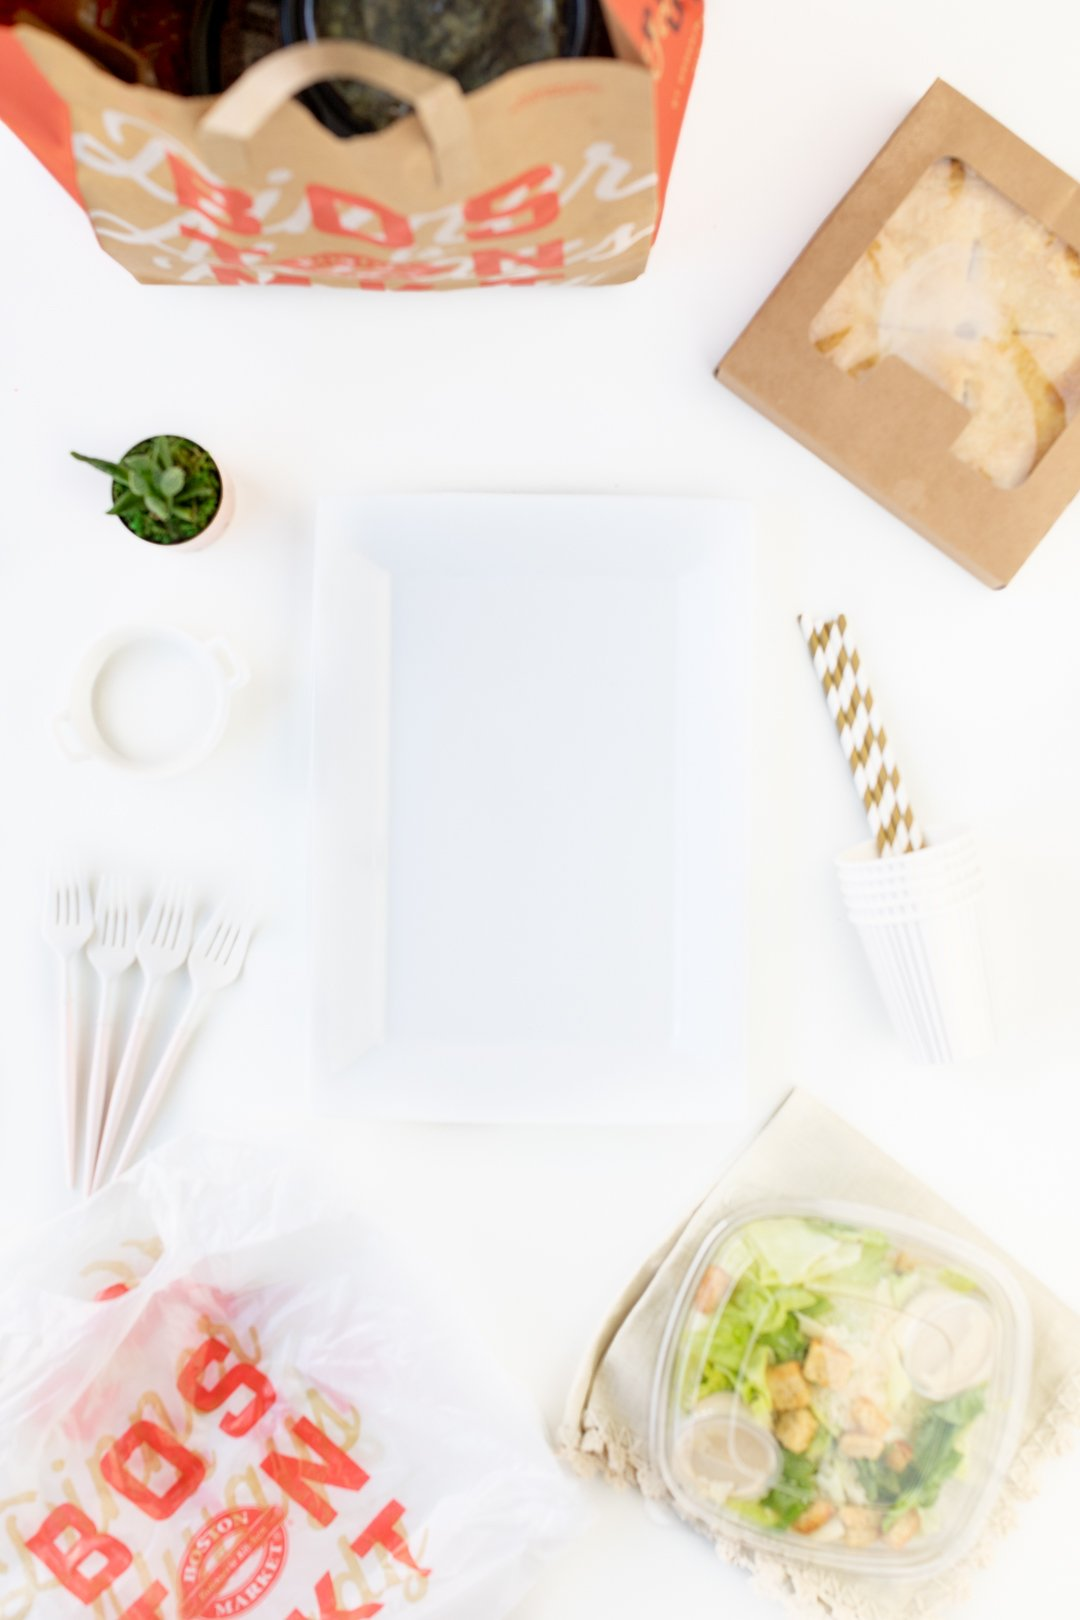 Basic dinner table set up with serving items